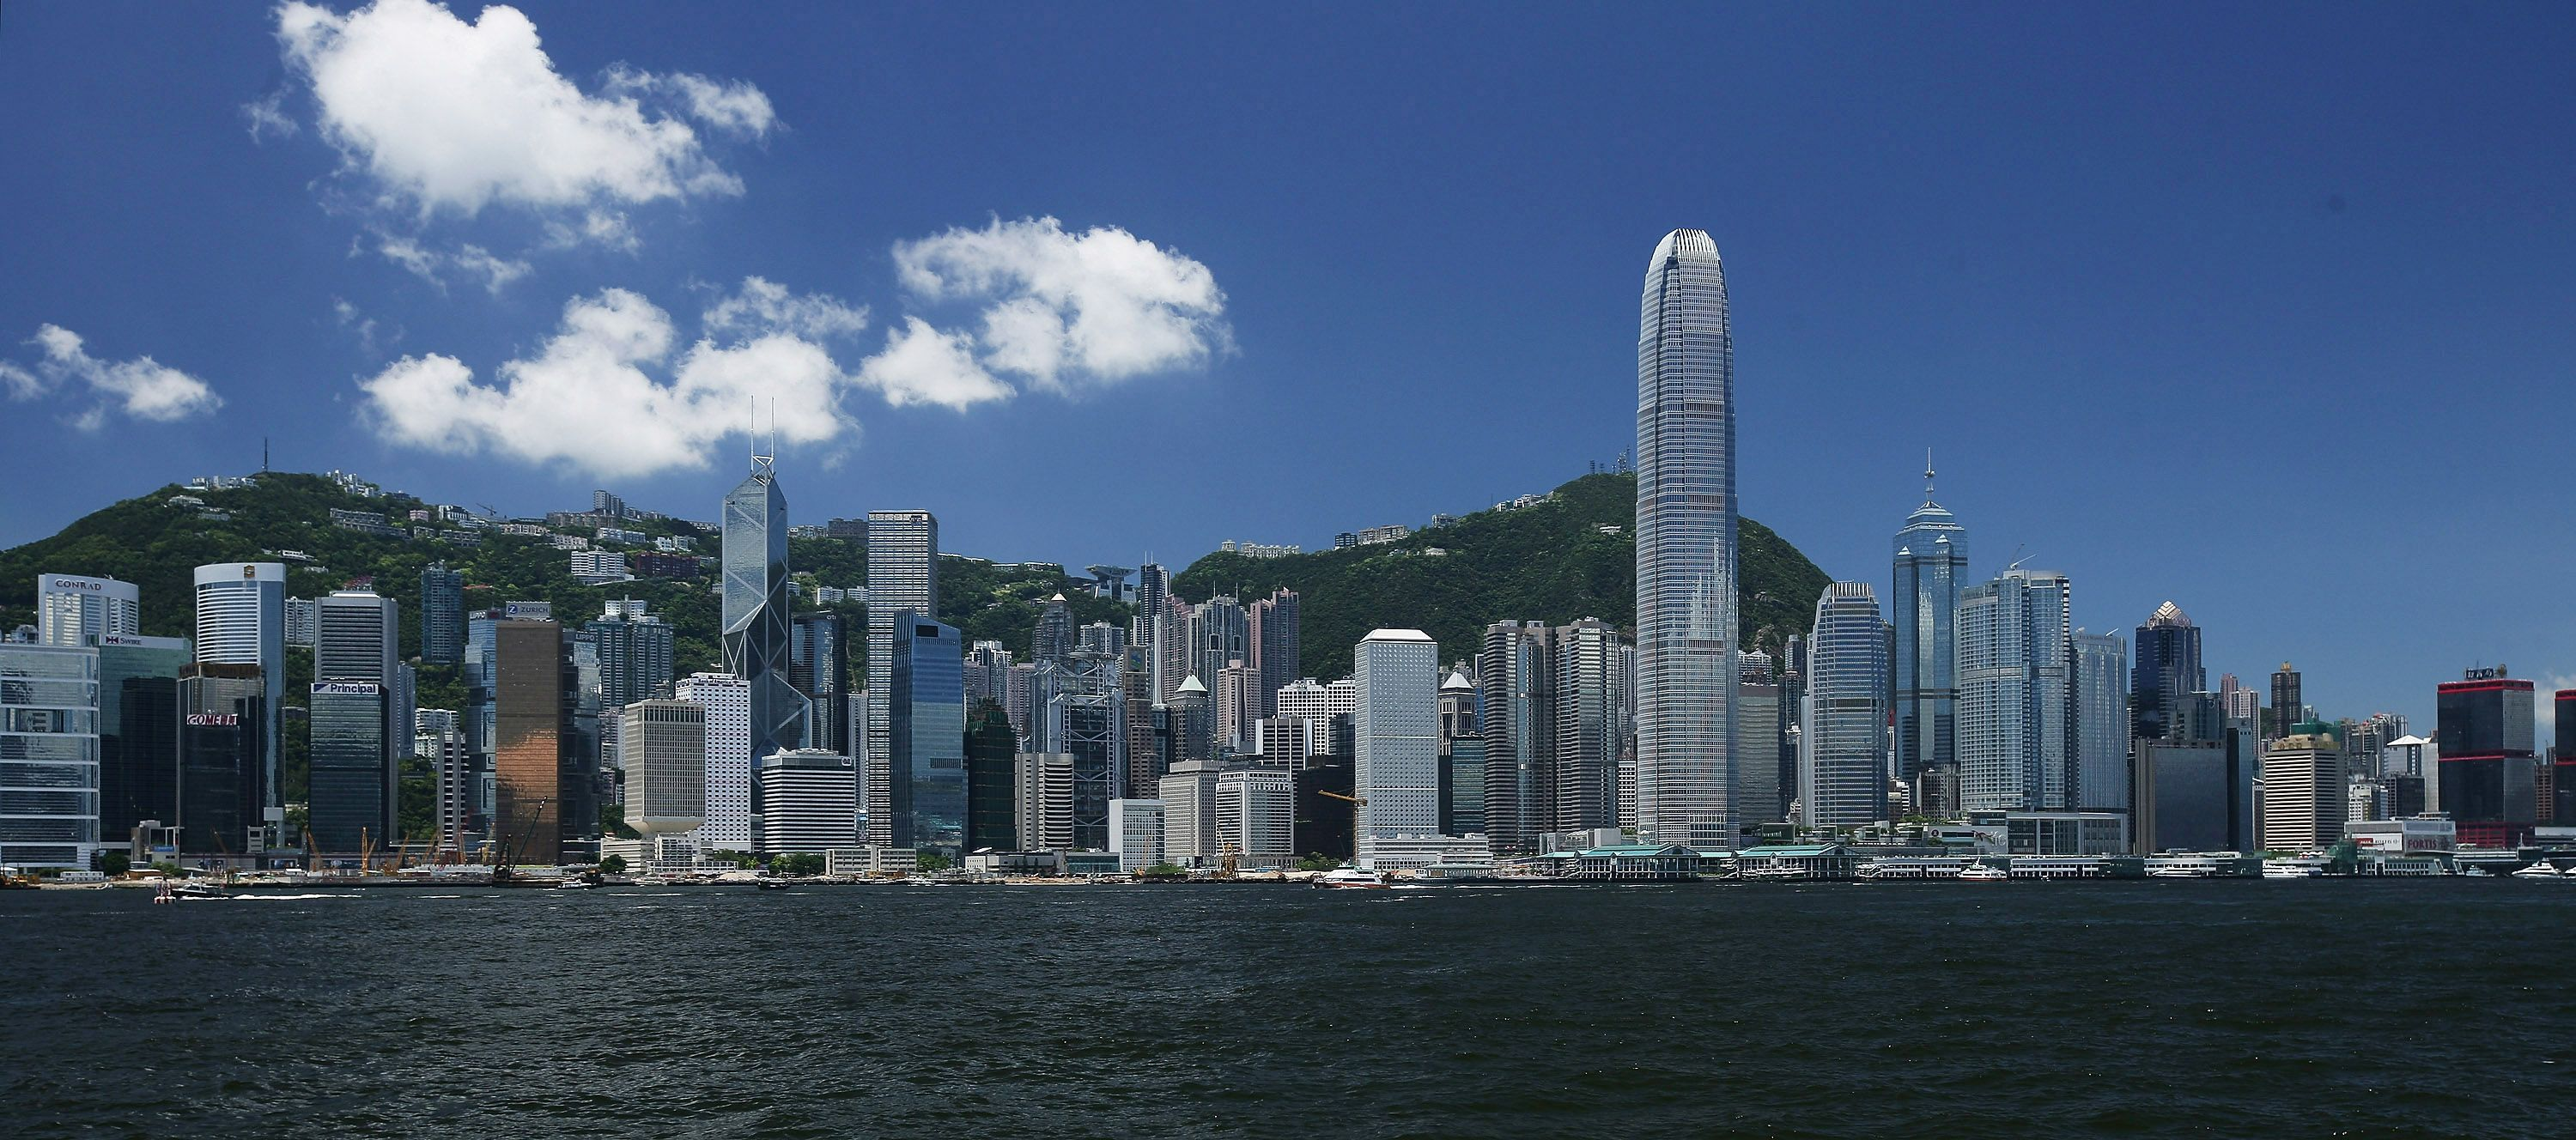 A view of the Victoria Harbour in Hong Kong